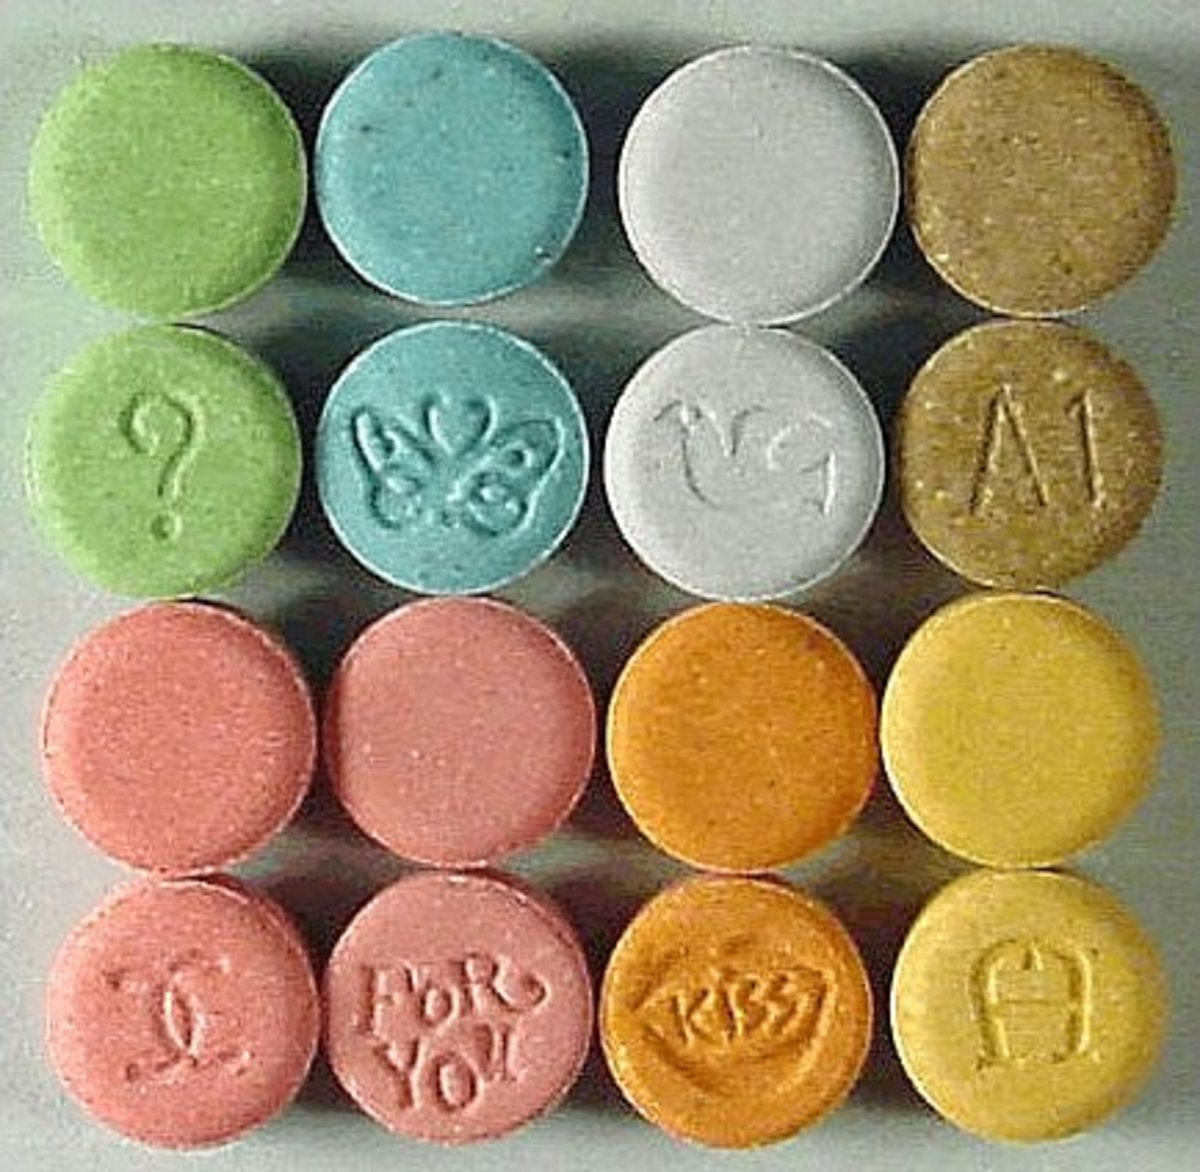 Ecstasy is an example of a club drug that can look like candy.